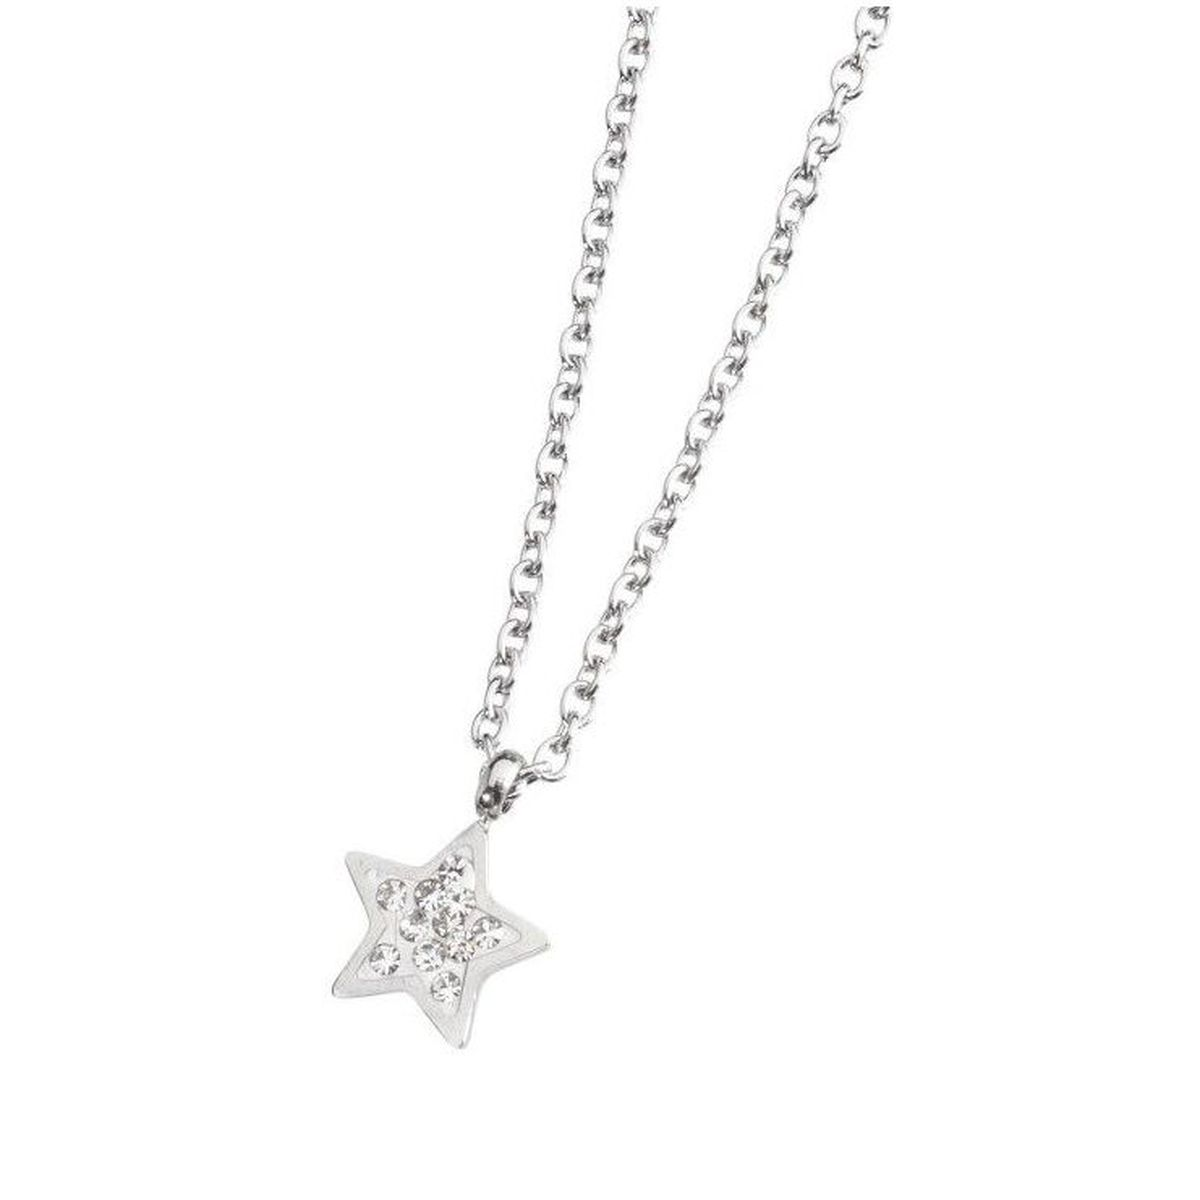 Star necklace in steel with rhinestones White Marlù